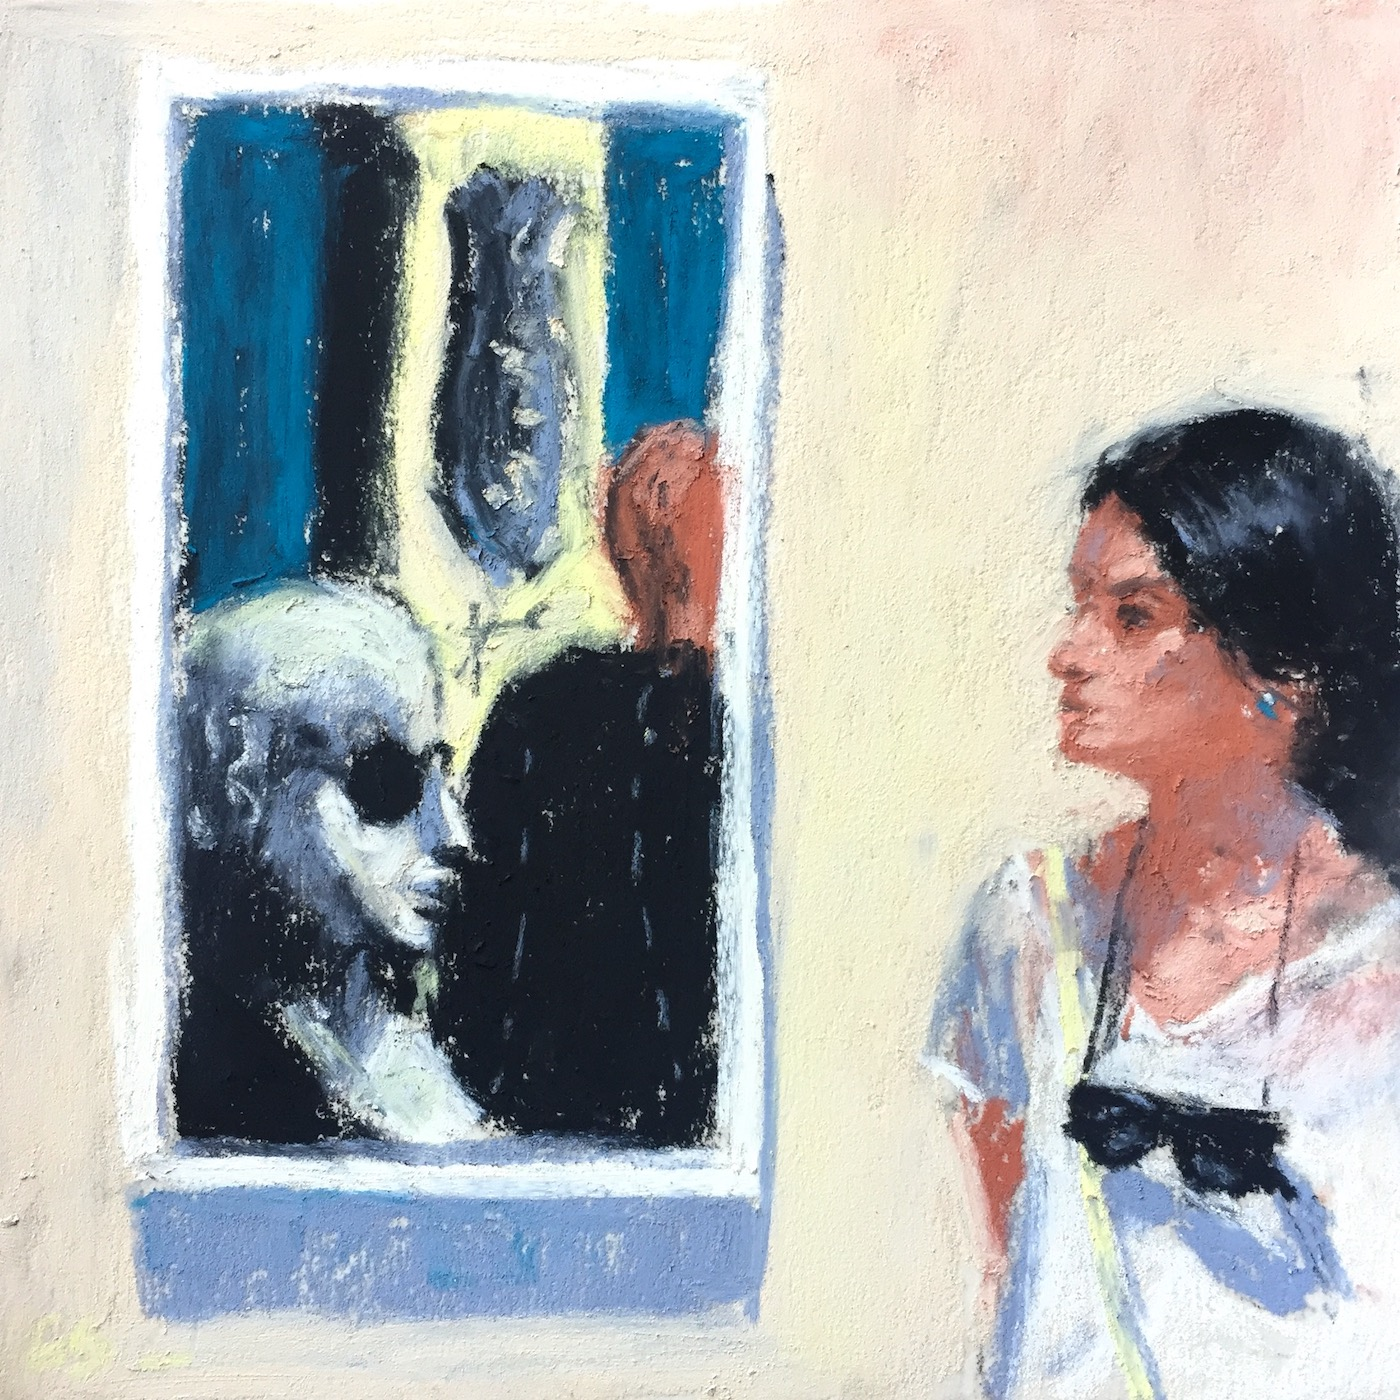 """Doing the Work: Day 22 """"Eye To Eye With de Chirico,"""" Unison pastels on UART 600, 6 x 6 in"""